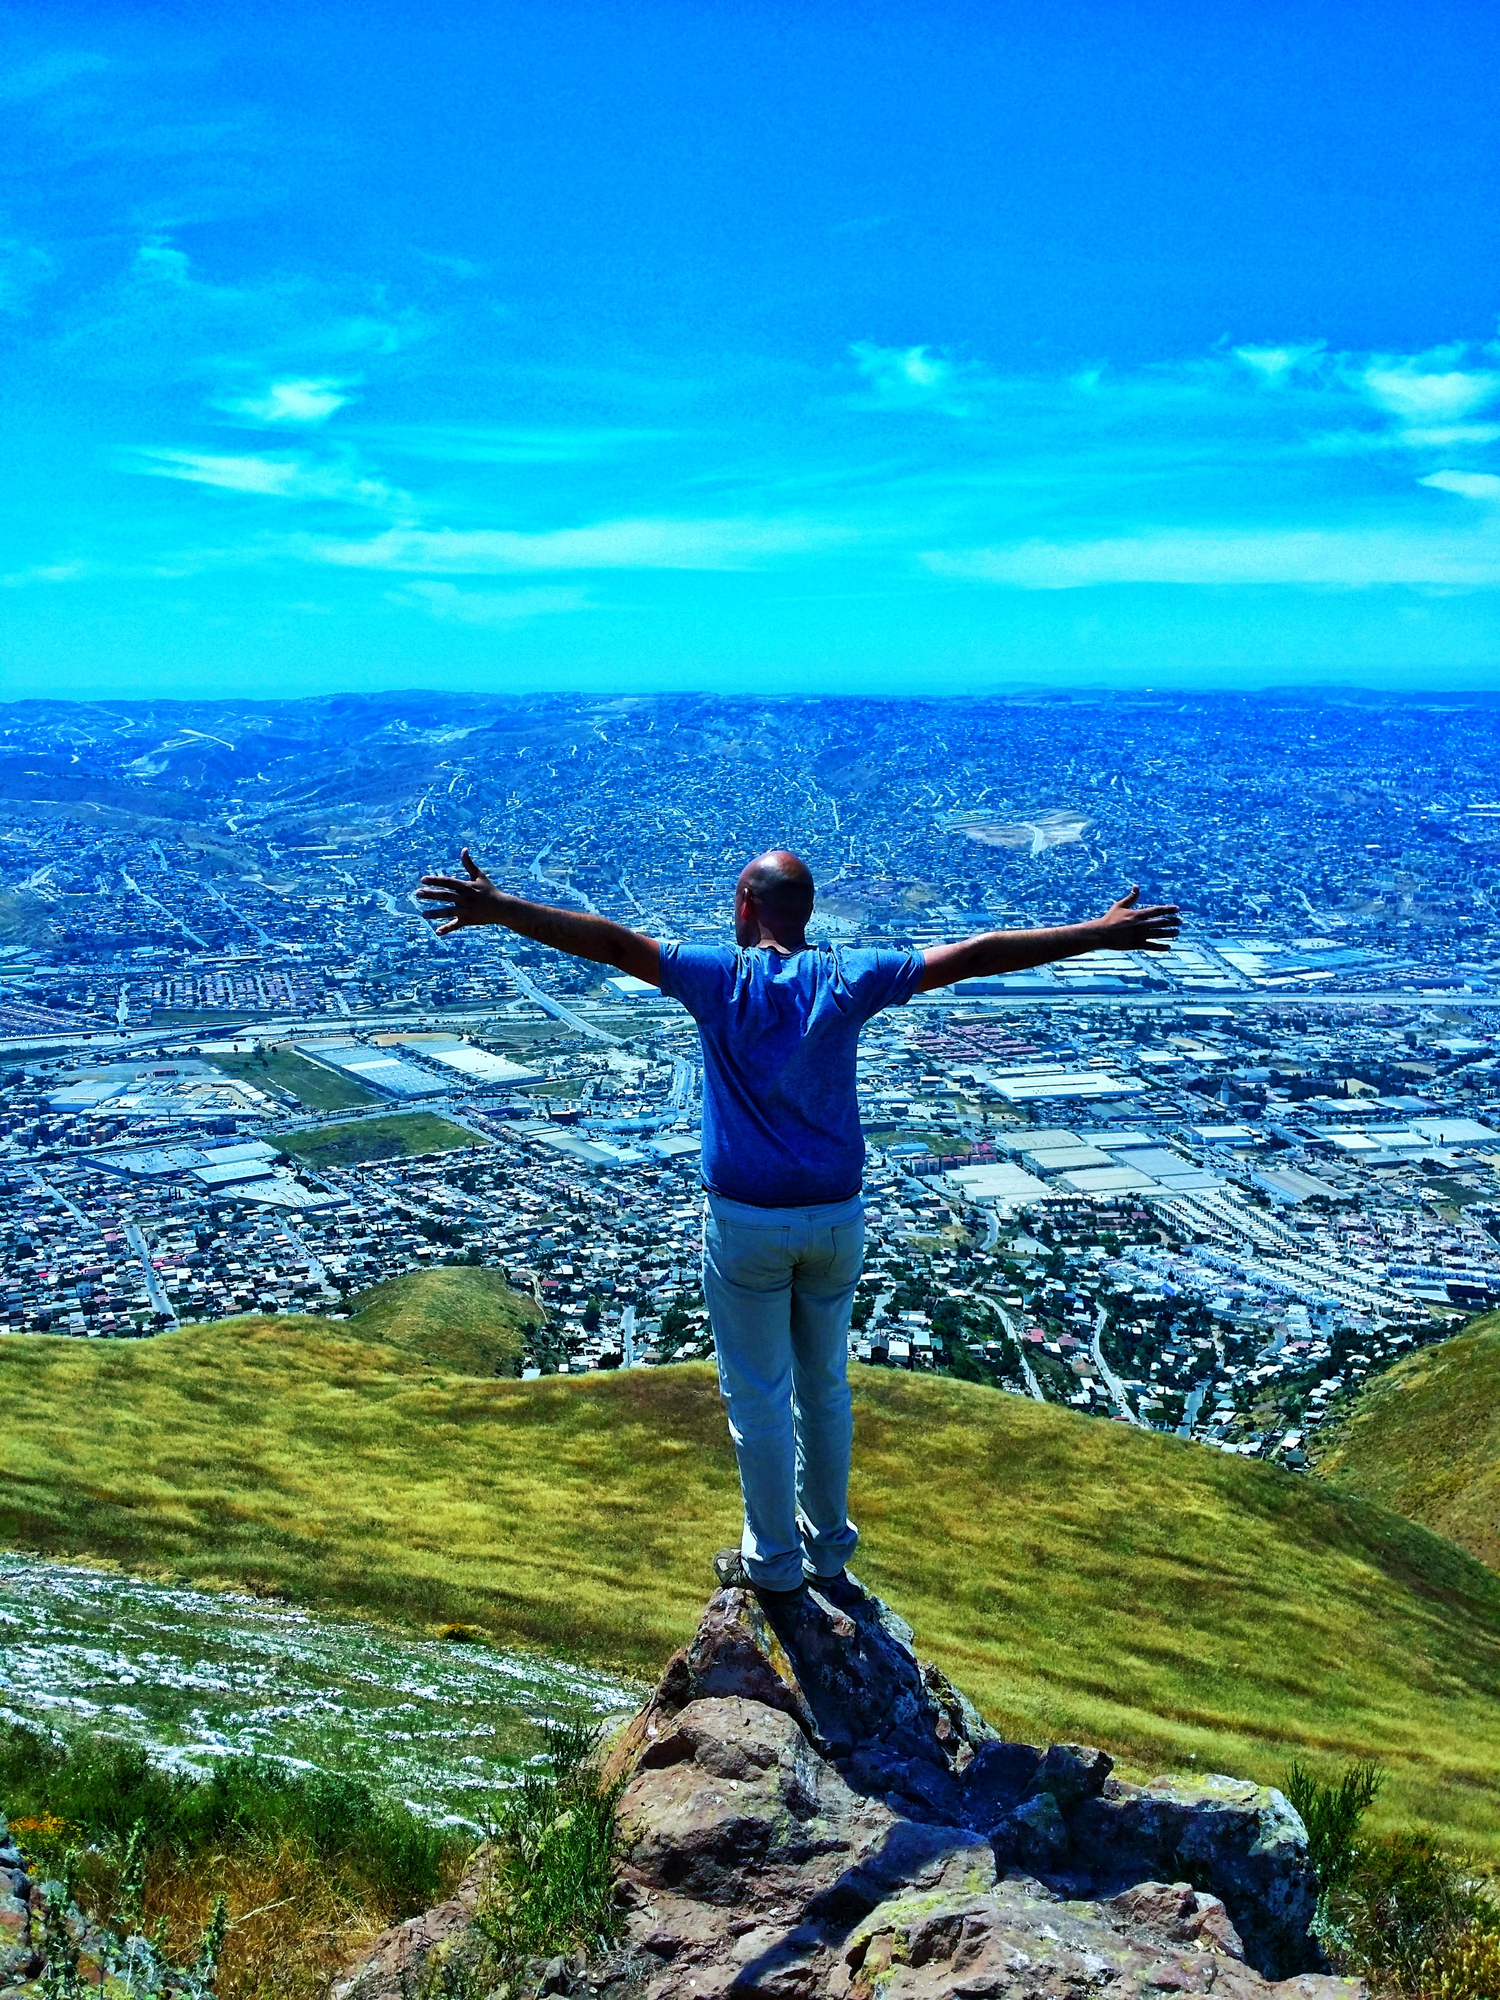 Full Length Of Man With Arms Outstretched Standing On Rock Over Hill Against Cityscape